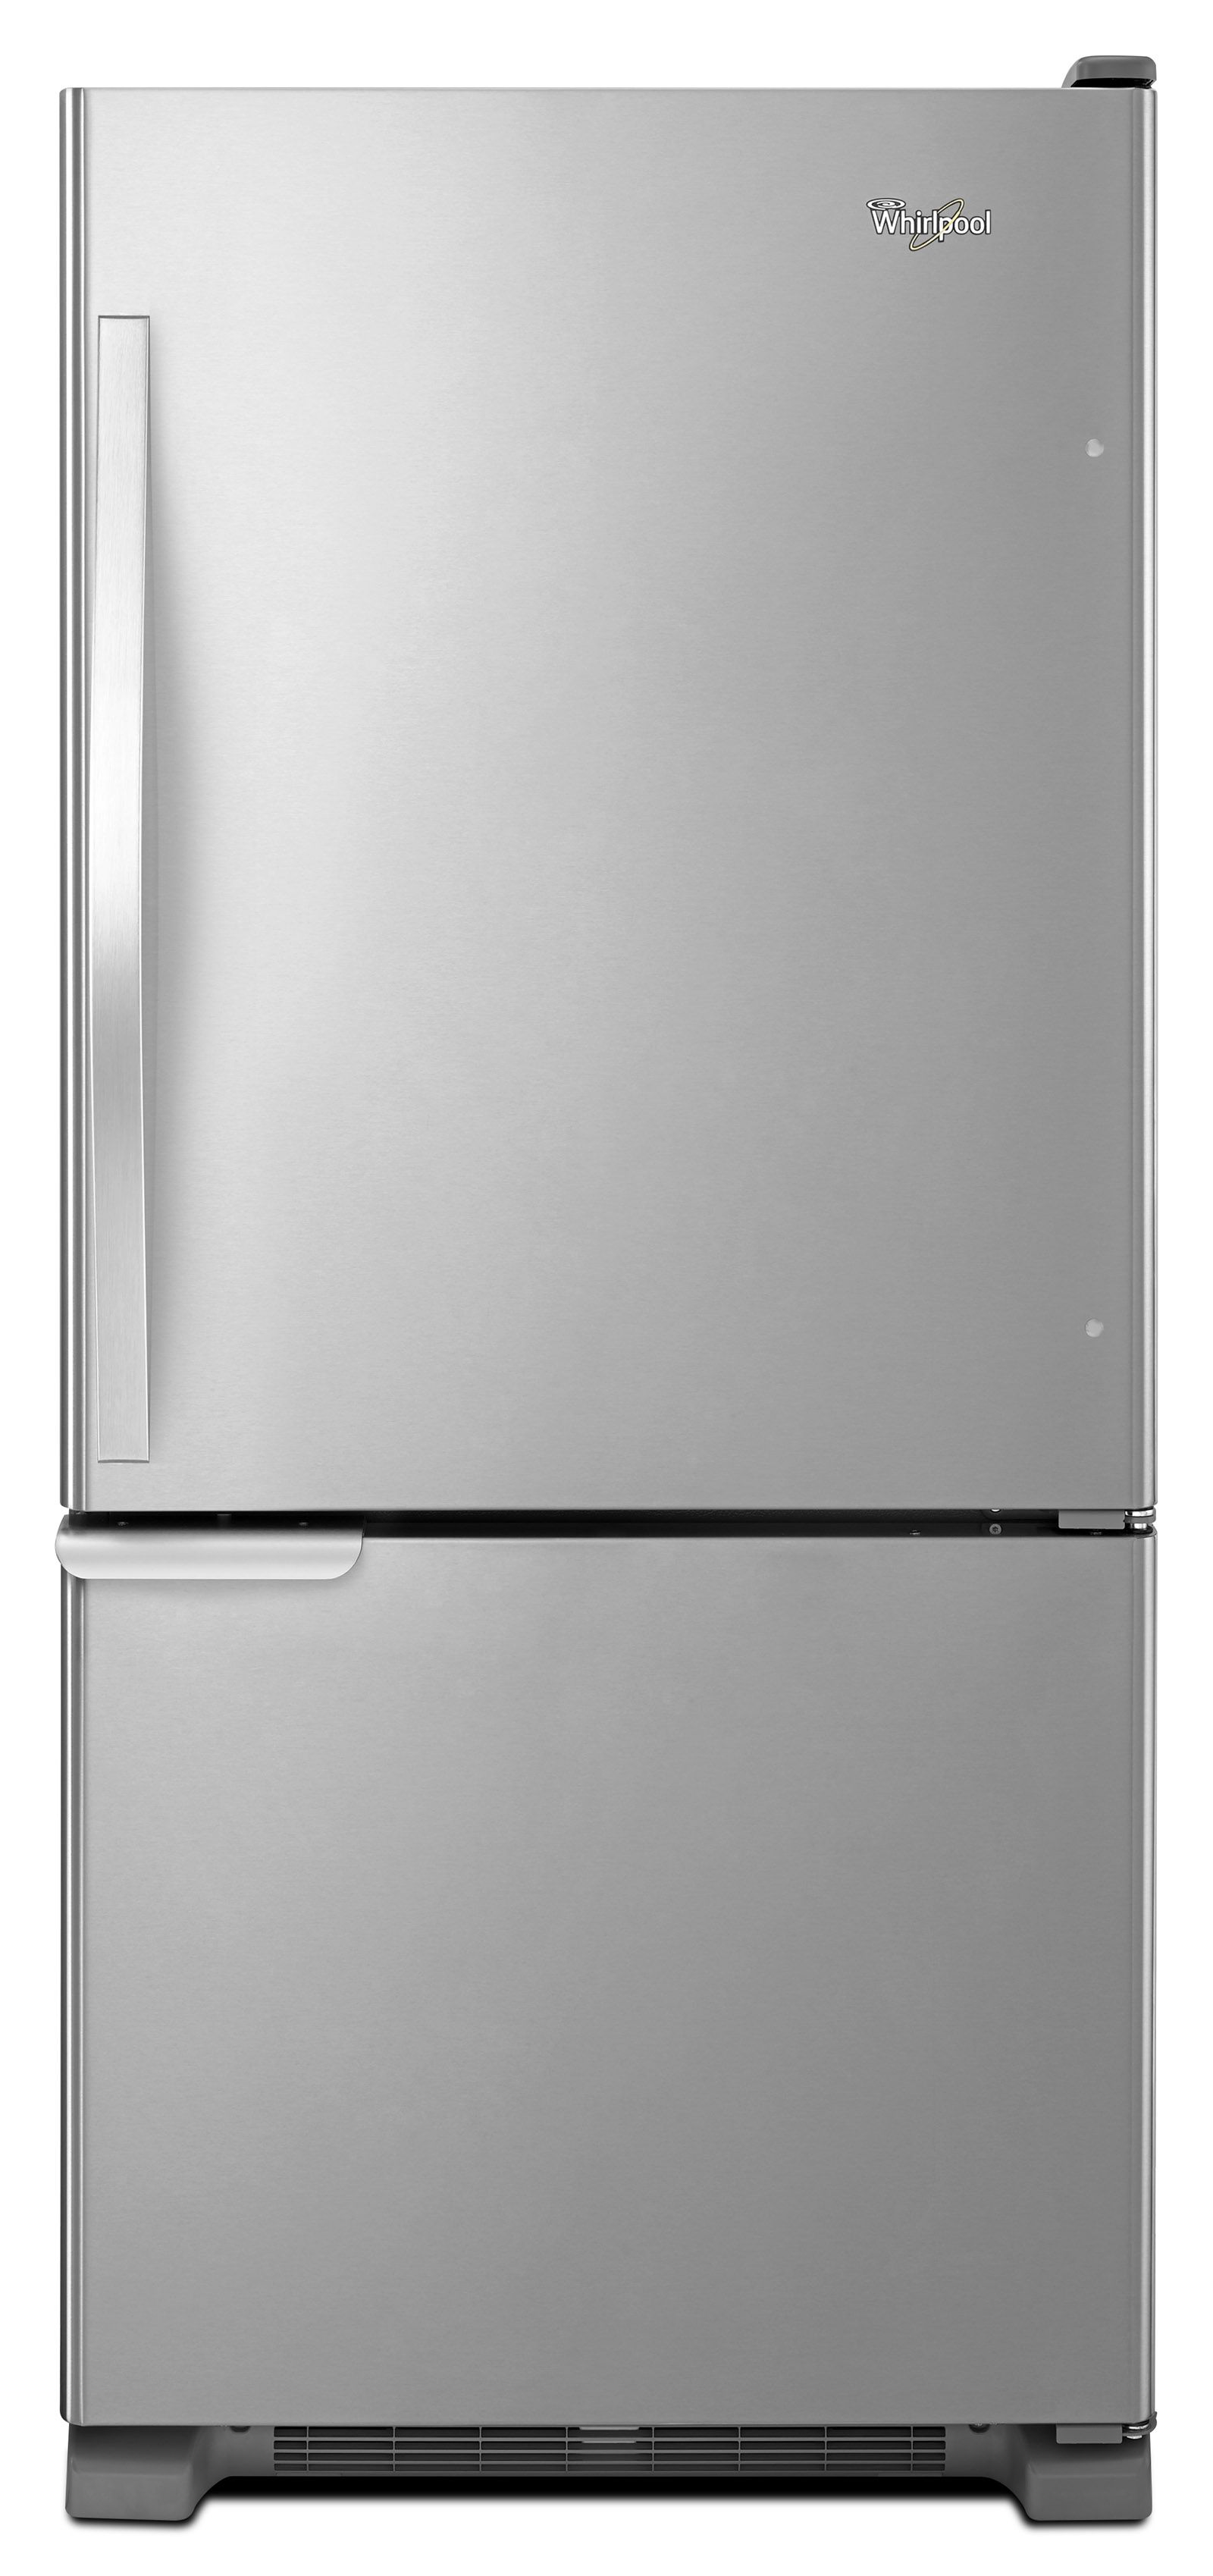 Charmant Single Door Bottom Freezer Refrigerator W/ Adaptive Defrost   Efficient And  Stylish